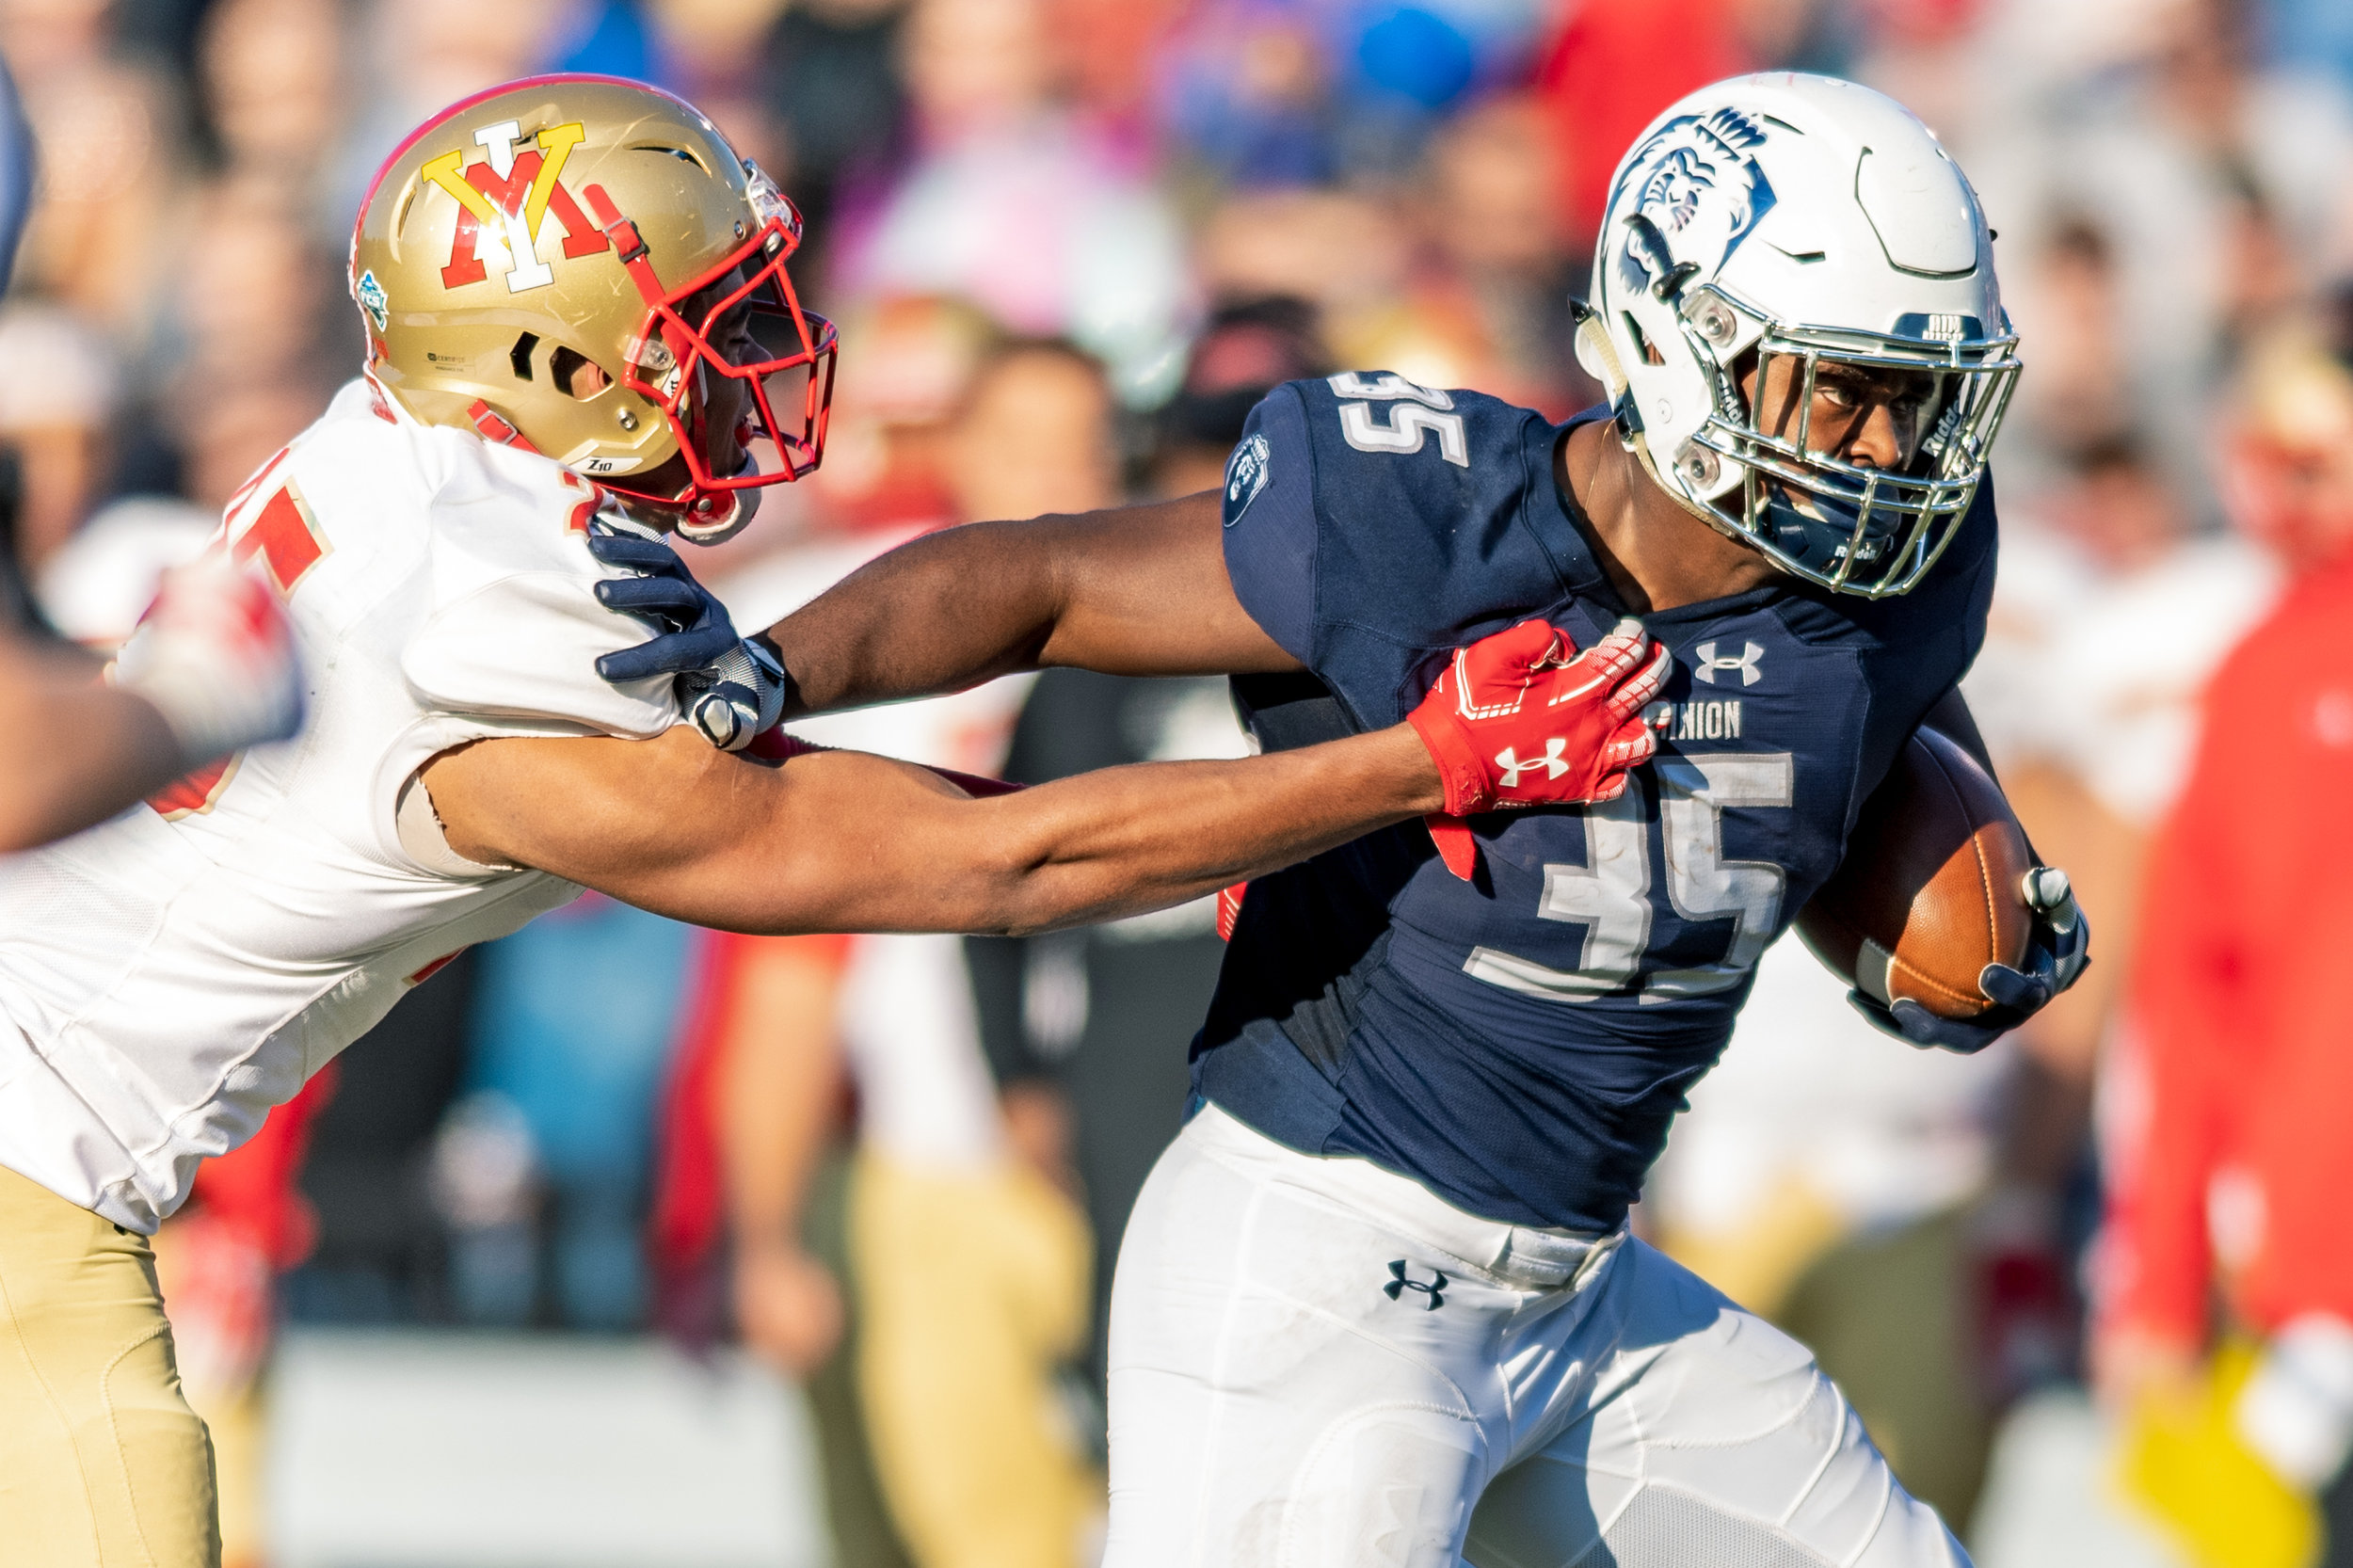 Old Dominion Monarchs running back Jeremy Cox (35) stiff arms Virginia Military Institute Keydets defensive back A.J. Smith (25) during the Saturday, Nov. 17, 2018 game held at Old Dominion University in Norfolk, Virginia. Old Dominion leads VMI 49 to 0 at halftime.